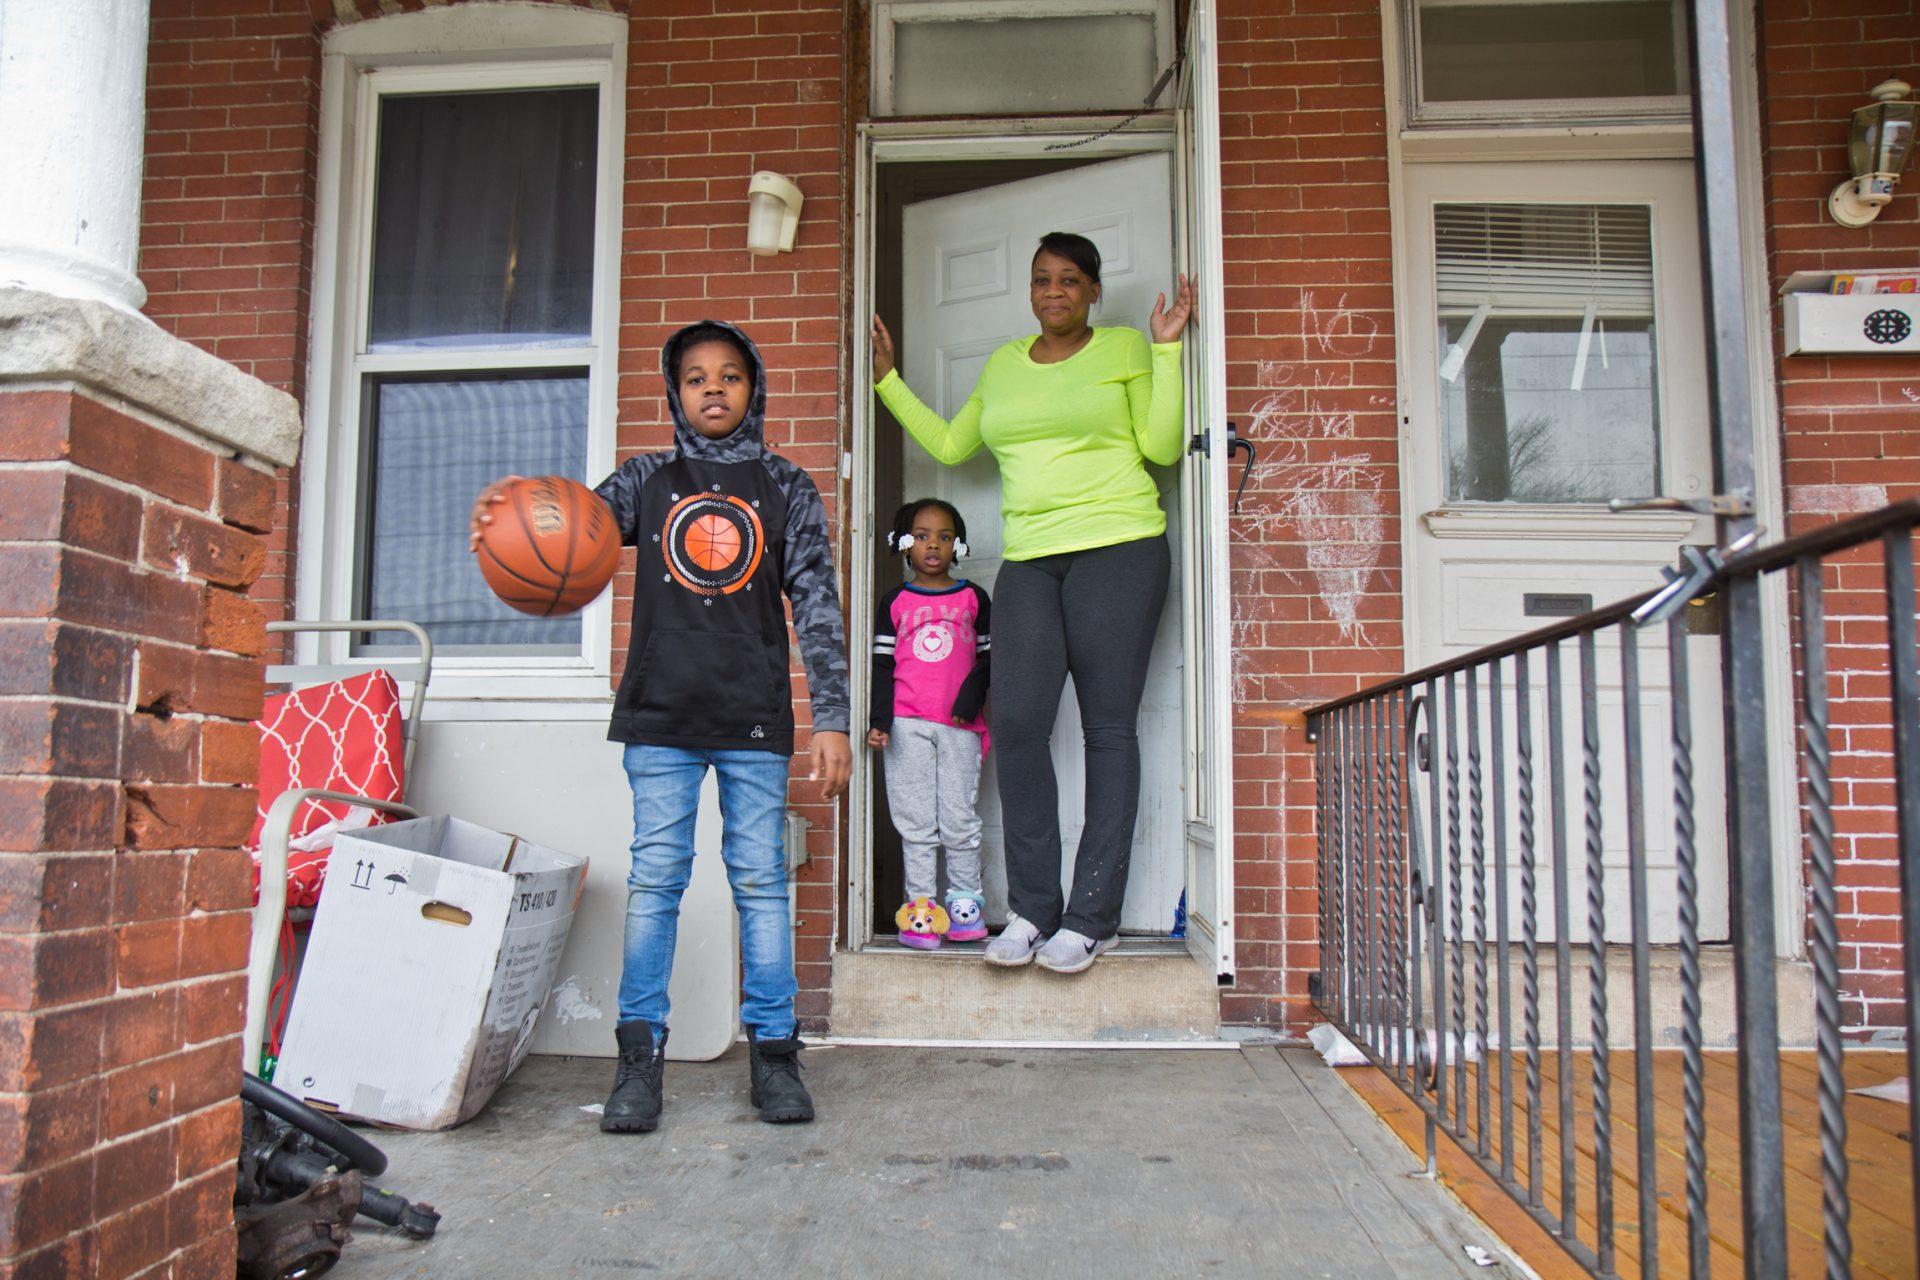 Norristown resident Lakeyia Johnson just reentered the workforce after a serious illness, but school closing due to COVID-19 are keeping her children and Johnson home.